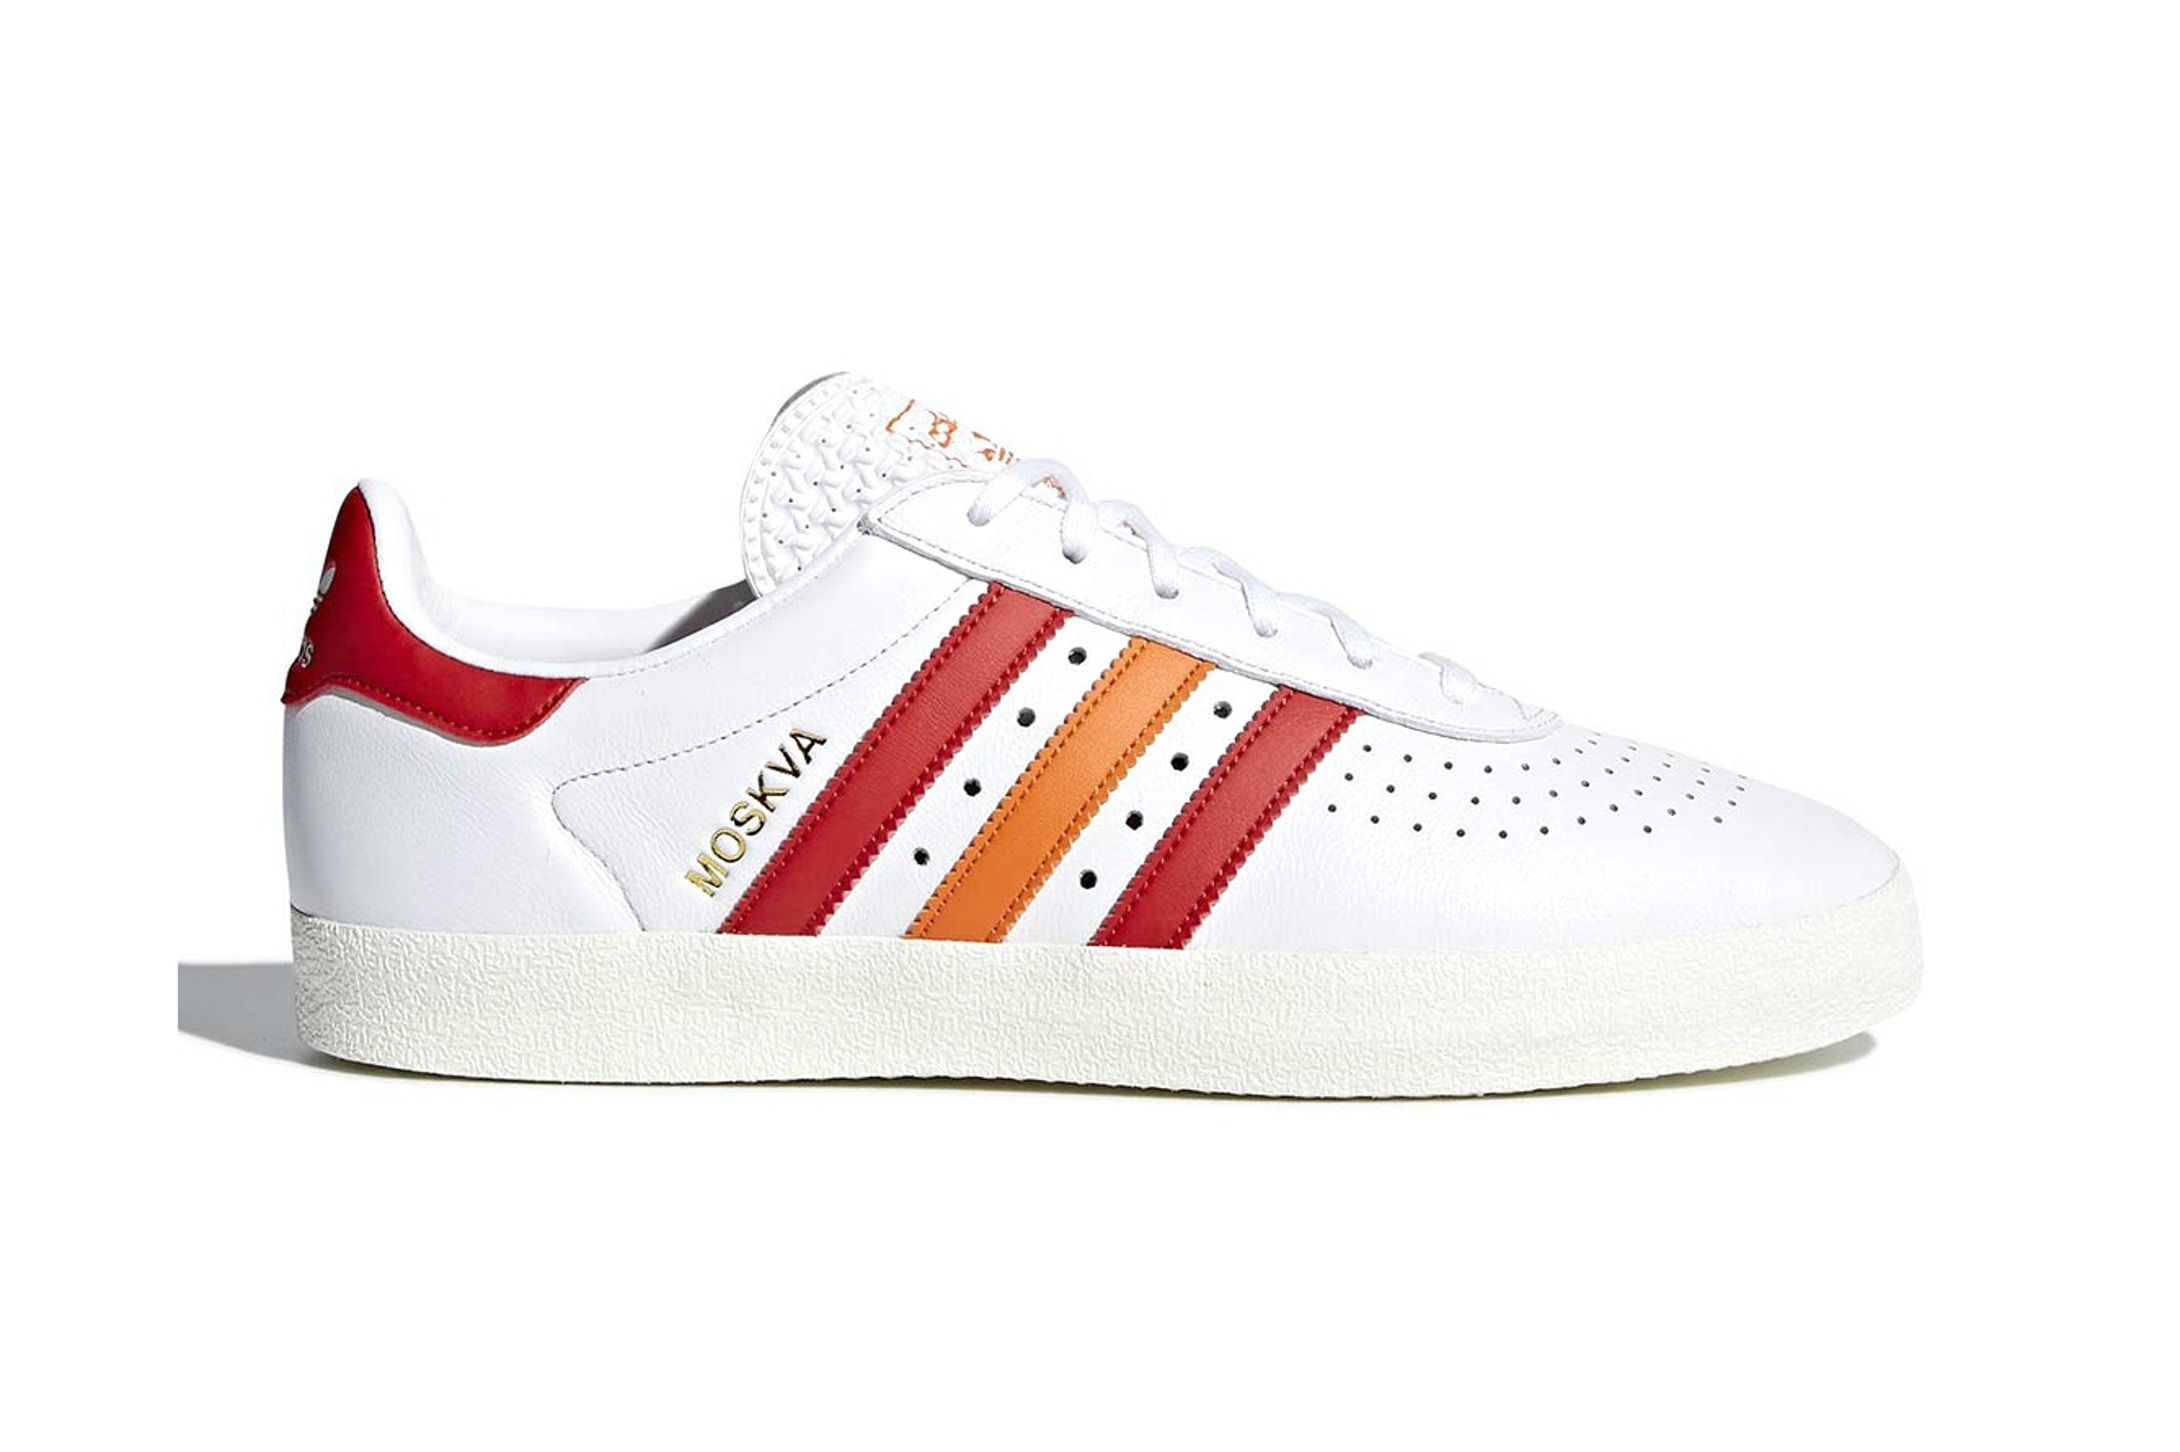 sports shoes eceda 00dc3 adidas Honors Moscow With Commemorative 350 Models  My Steeze  Pinterest   Adidas, Adidas sneakers and Sneakers